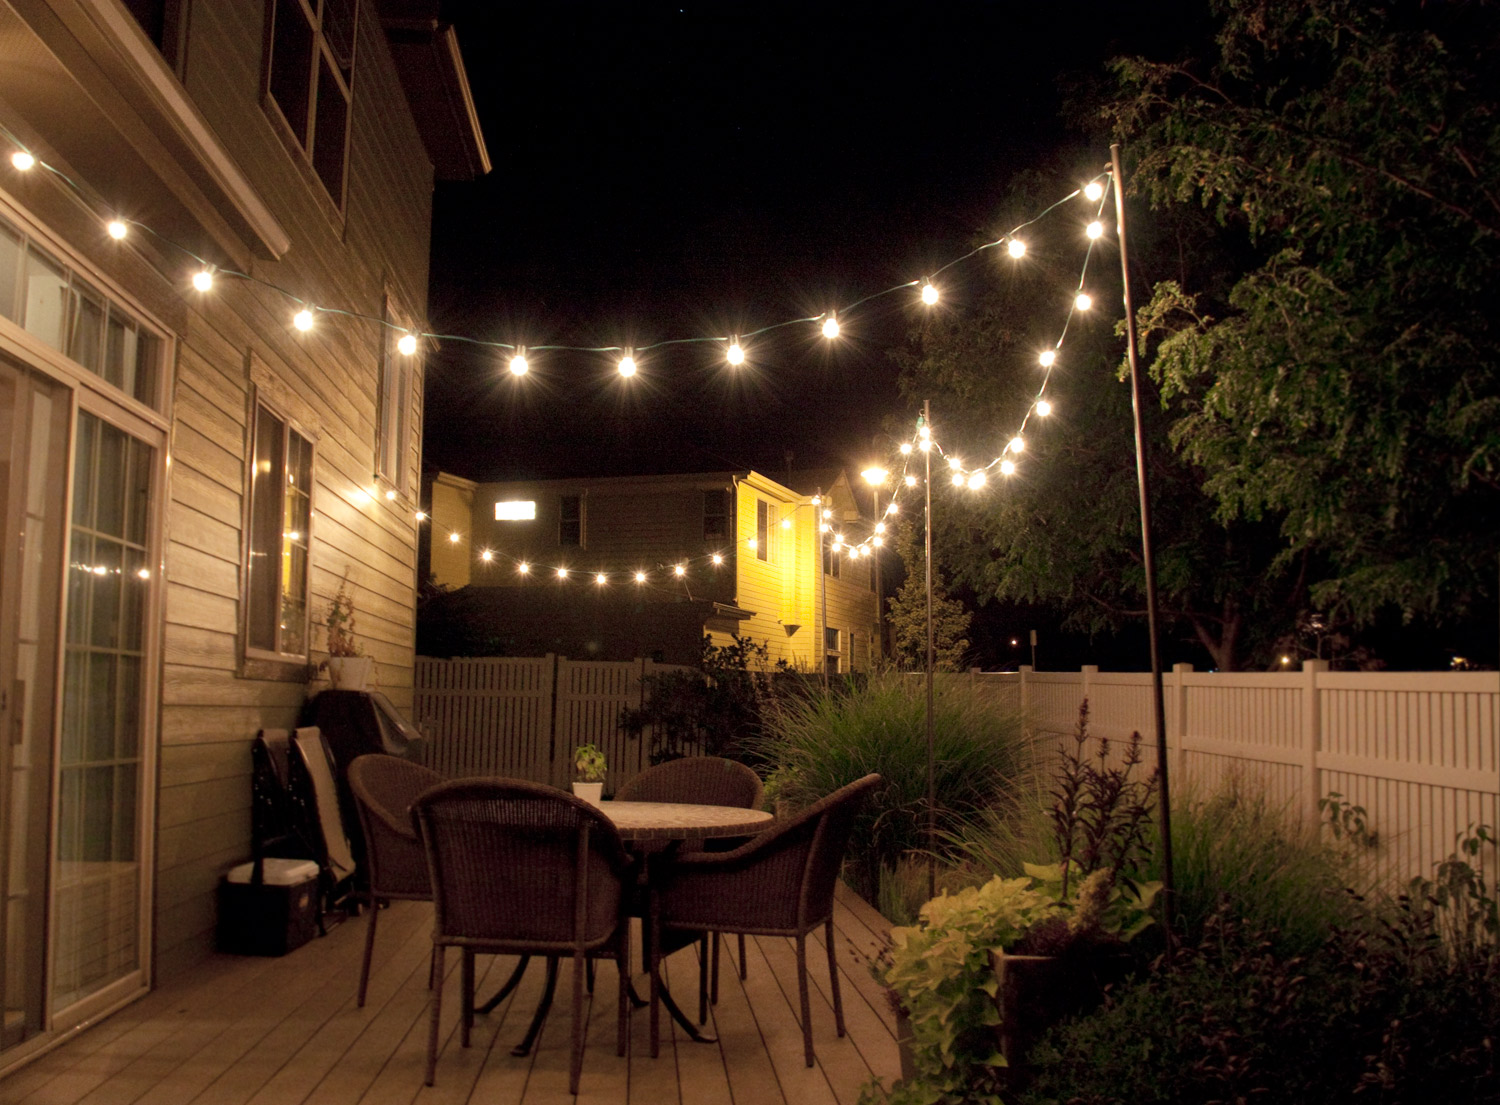 17 outdoor lighting ideas for the garden scattered thoughts of a 17 outdoor lighting ideas for the garden scattered thoughts of a crafty mom by jamie sanders audiocablefo